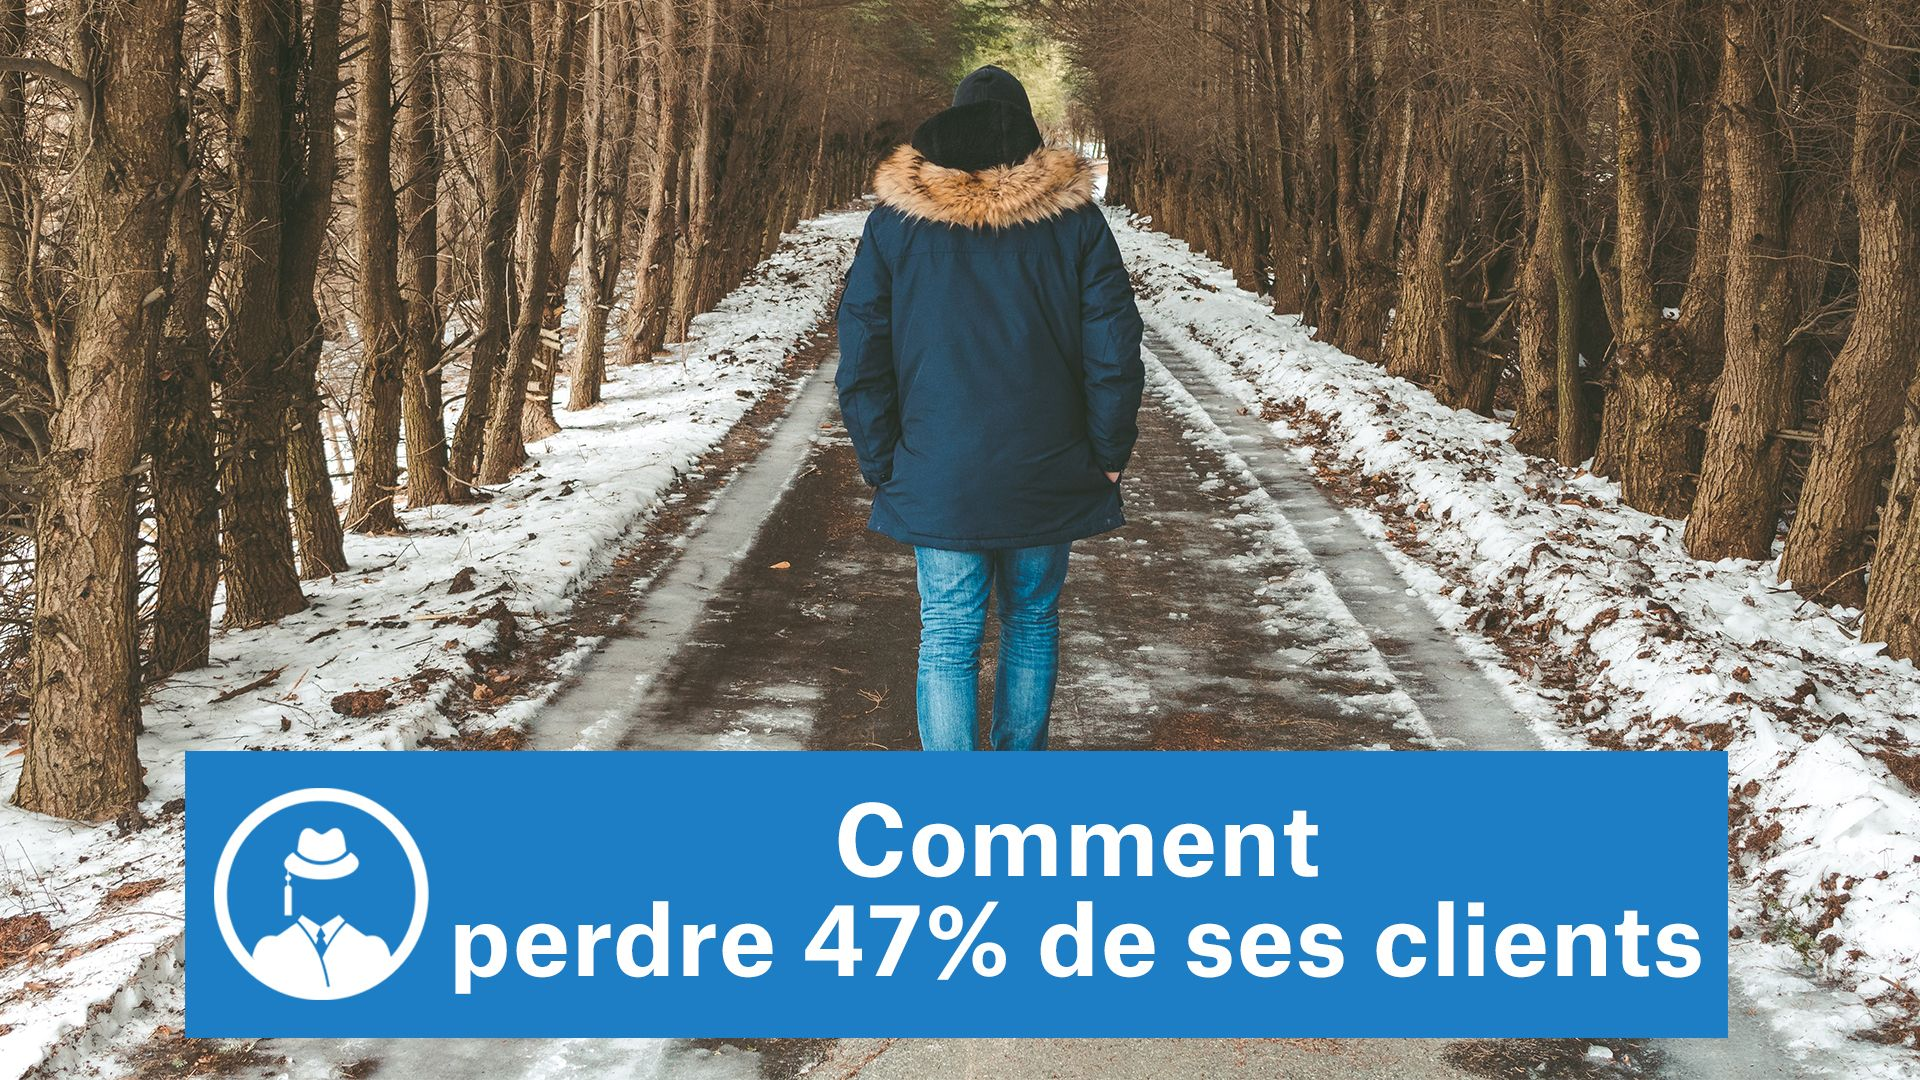 Comment perdre 47% de ses clients #GrowthHacking #WebMarketing #FormationGrowthHacking #CentreDeFormationFrance #TunnelAARRR #AARRR #SocialMedia #CommunityManagement #SEO #MarketingDigital #SiteWeb